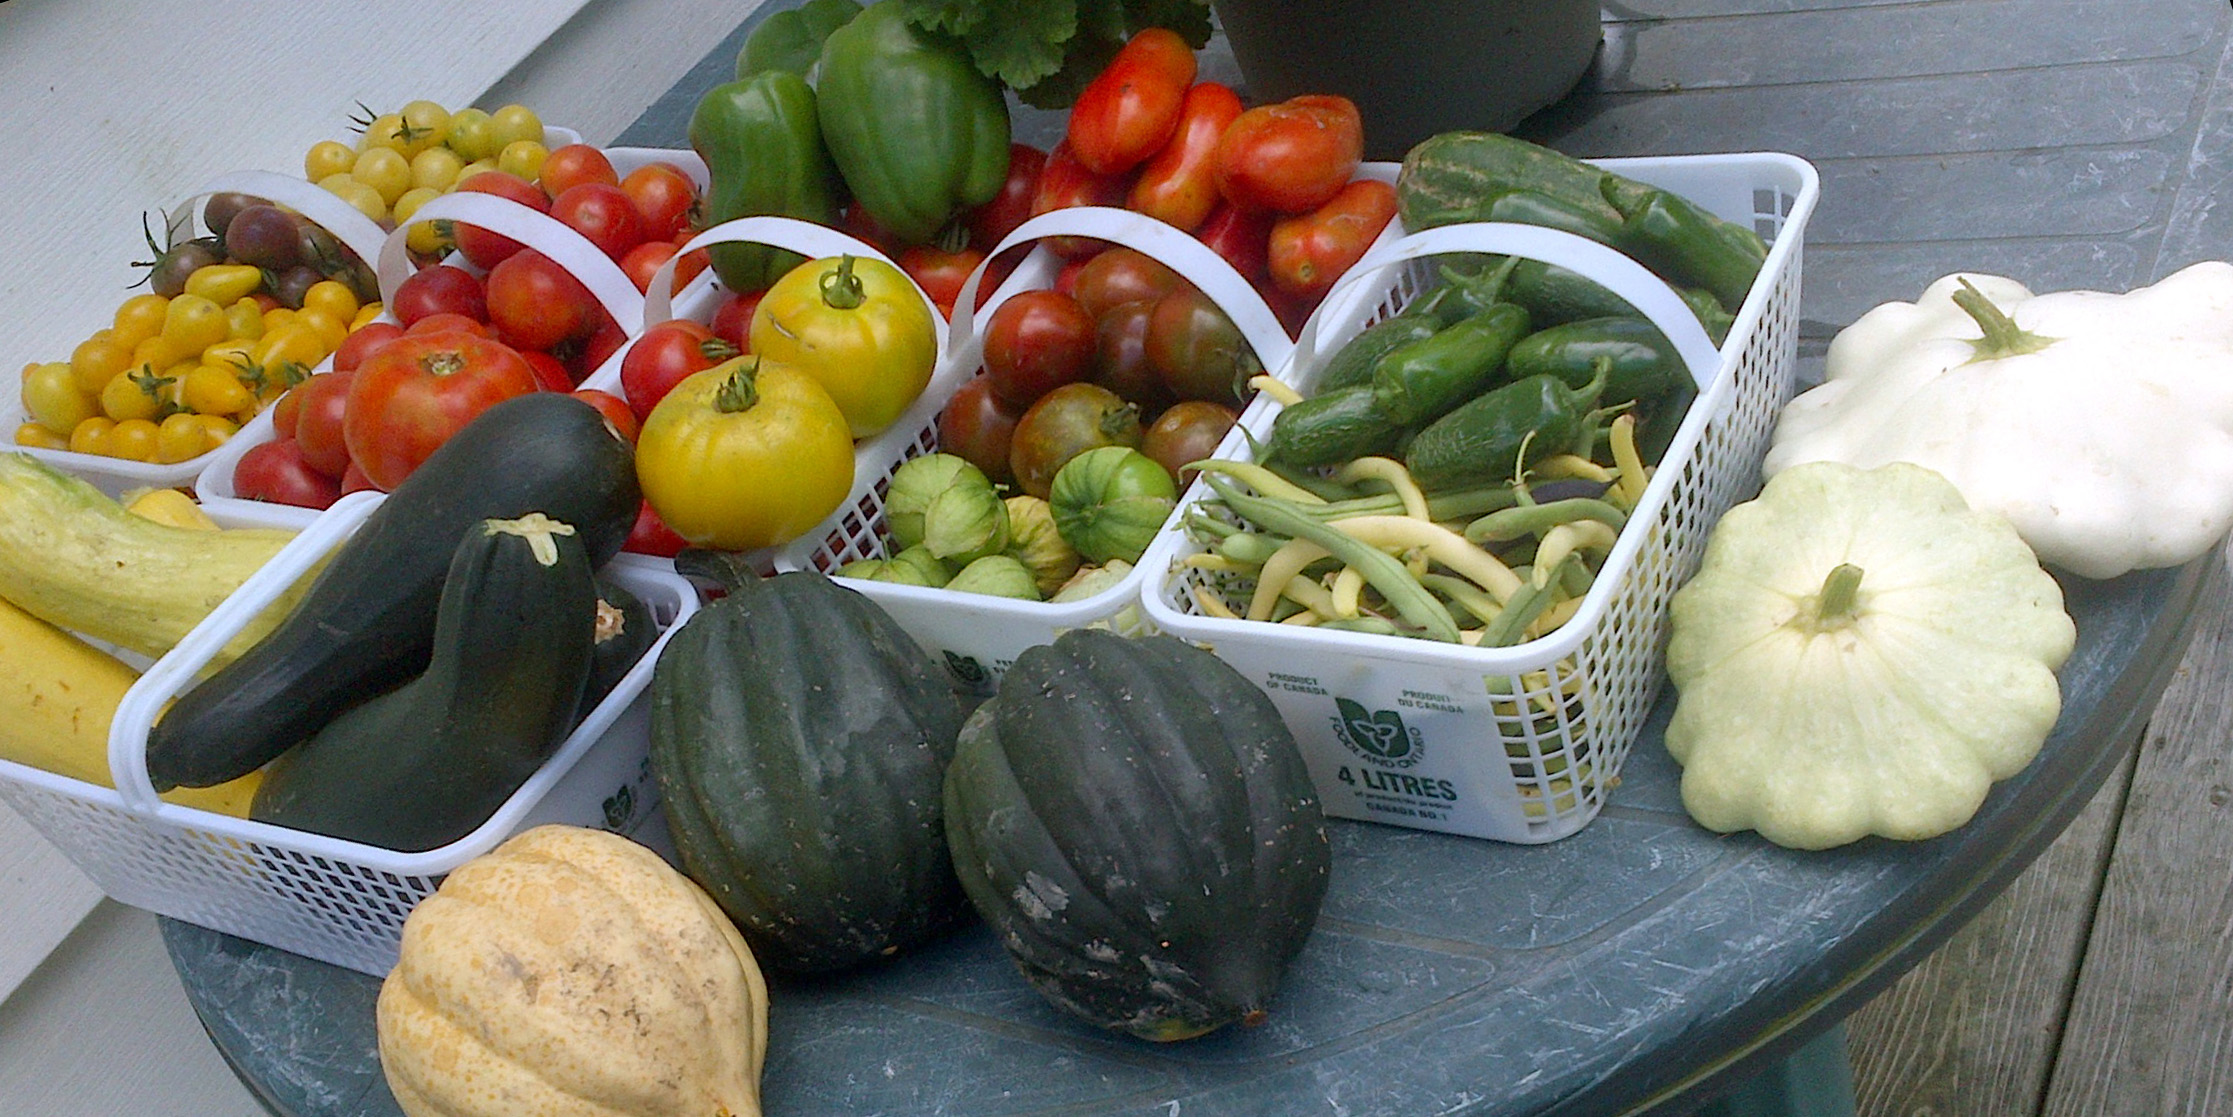 #VictoryGarden: What Should You Grow?